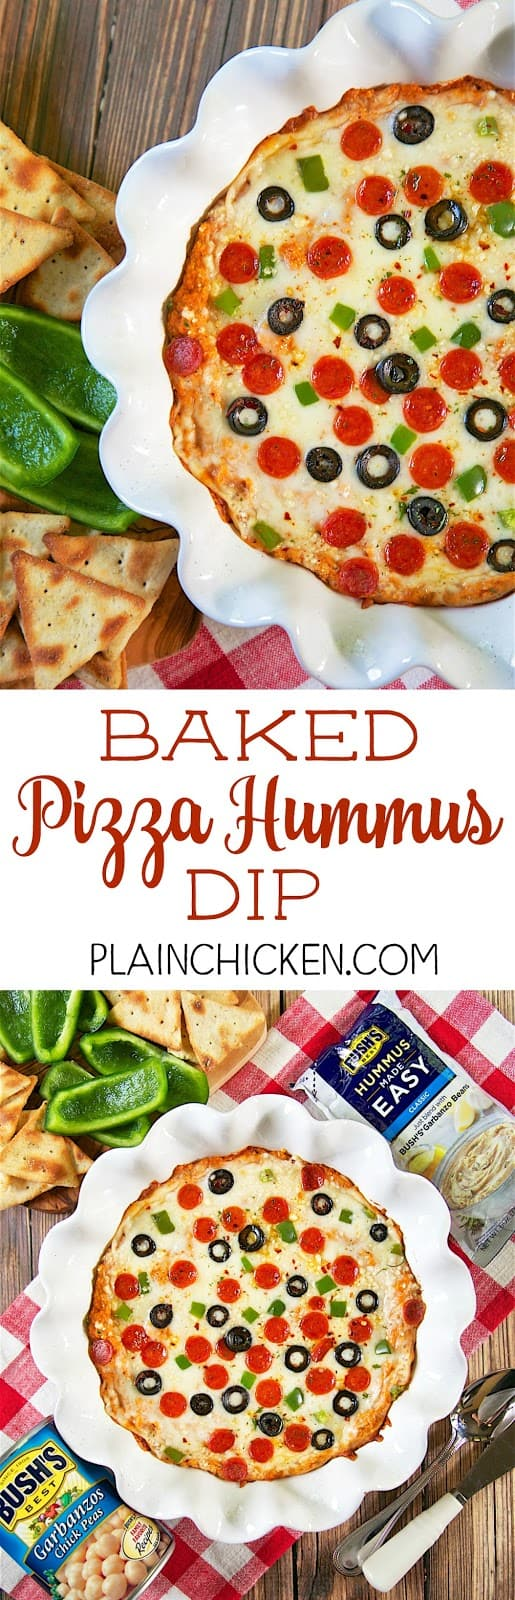 Baked Pizza Hummus Dip - quick homemade pizza hummus topped with mozzarella, parmesan and your favorite pizza toppings. Start with garbanzo beans and a pouch of Bush's Classic Hummus Made Easy, add tomato paste, garlic, Italian Seasoning and parmesan cheese. Bake for 15 minutes. Serve with bell pepper slices and pita chips. Great for a quick party appetizer or alternative for pizza night!